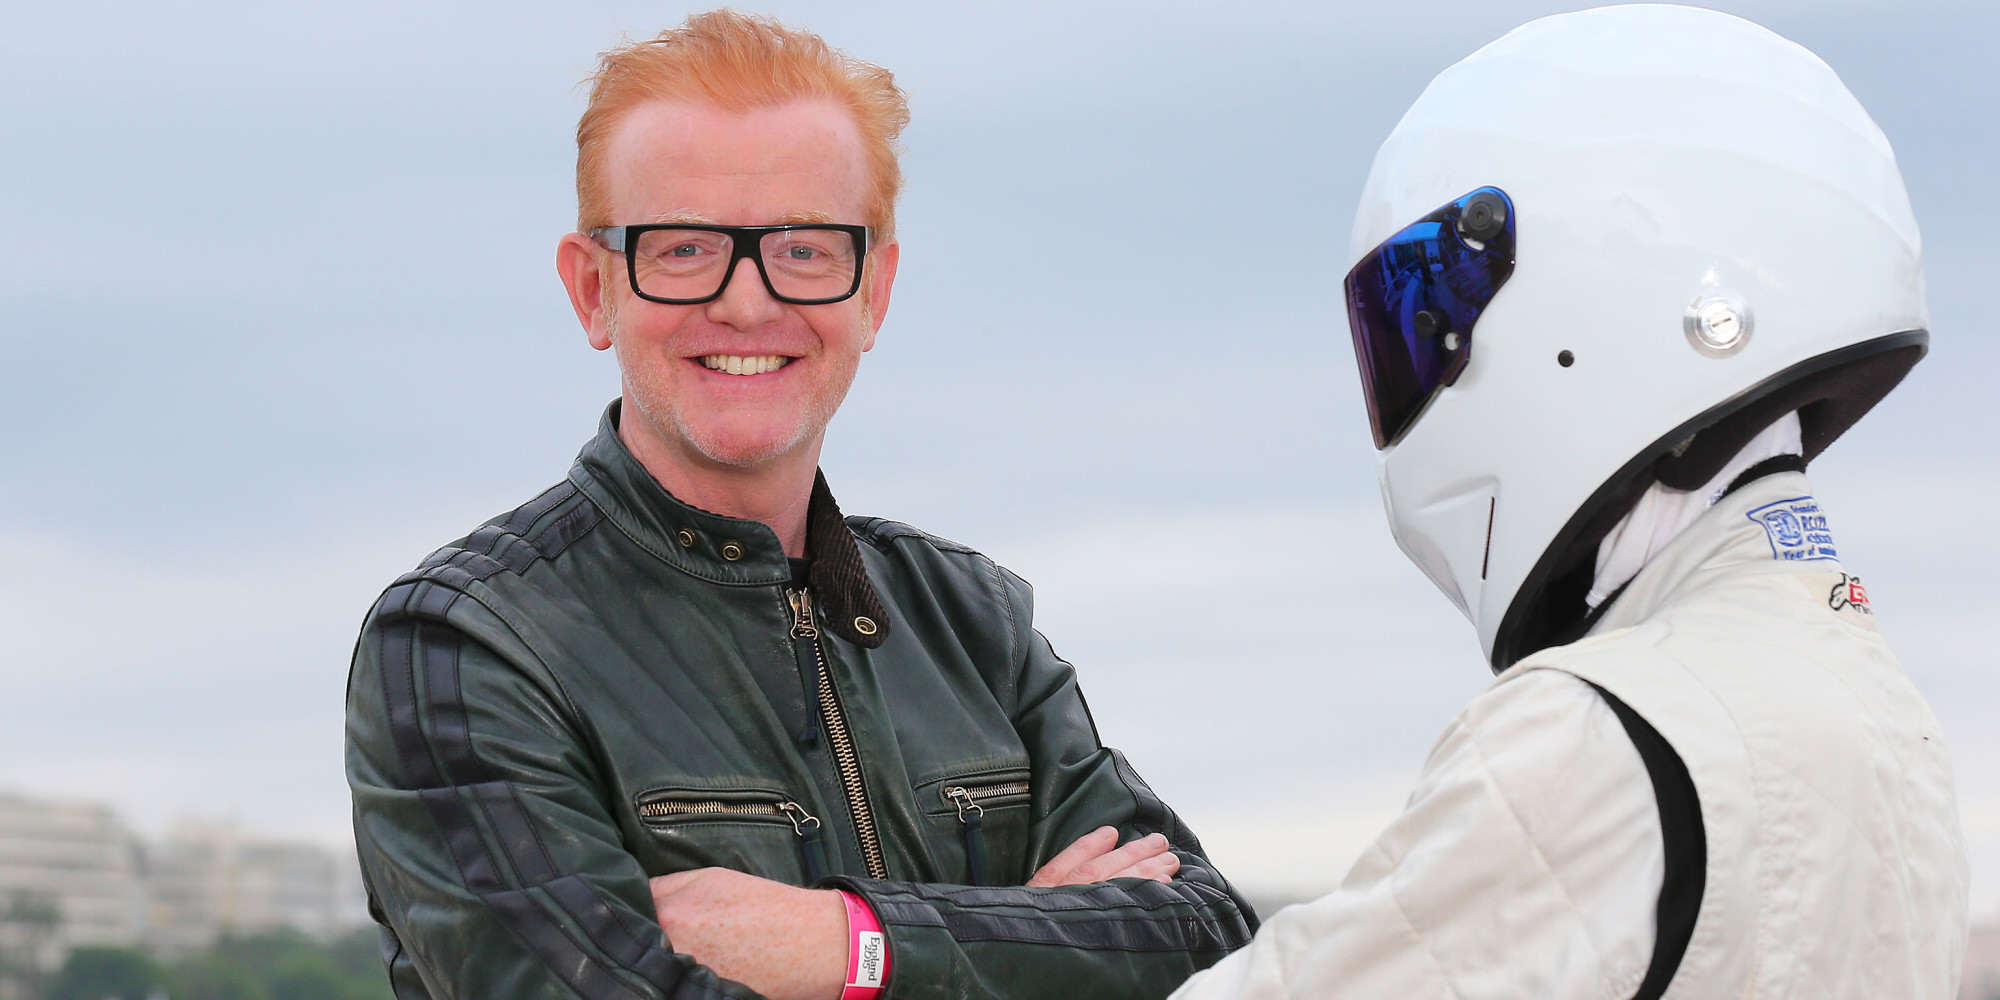 o CHRIS EVANS TOP GEAR facebook New Top Gear Host Throws Shade At Past It Jeremy Clarkson